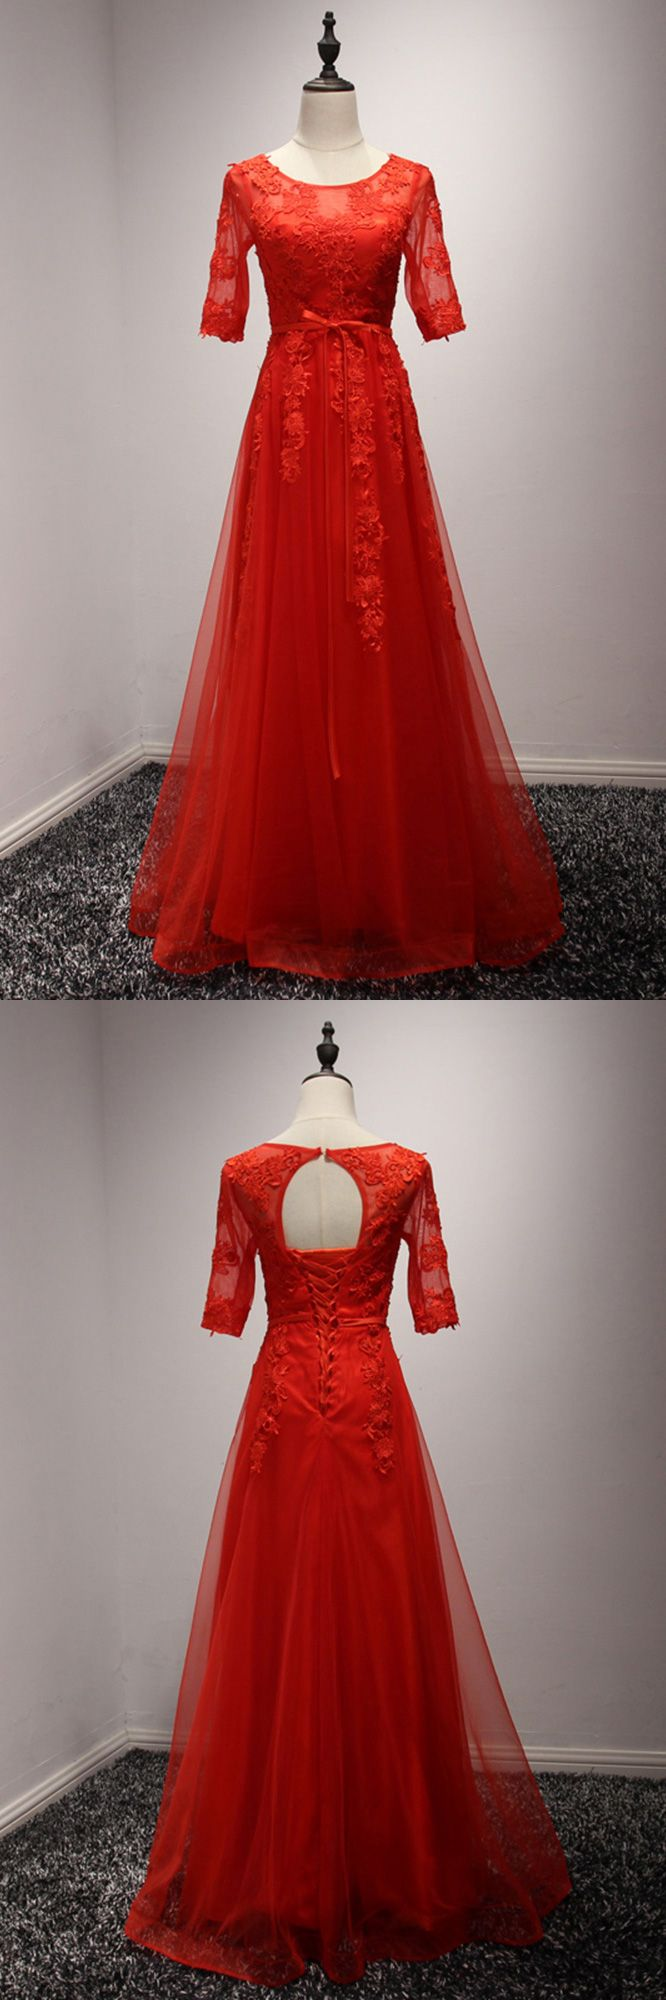 Modest sleeved lace red formal dress long for wedding